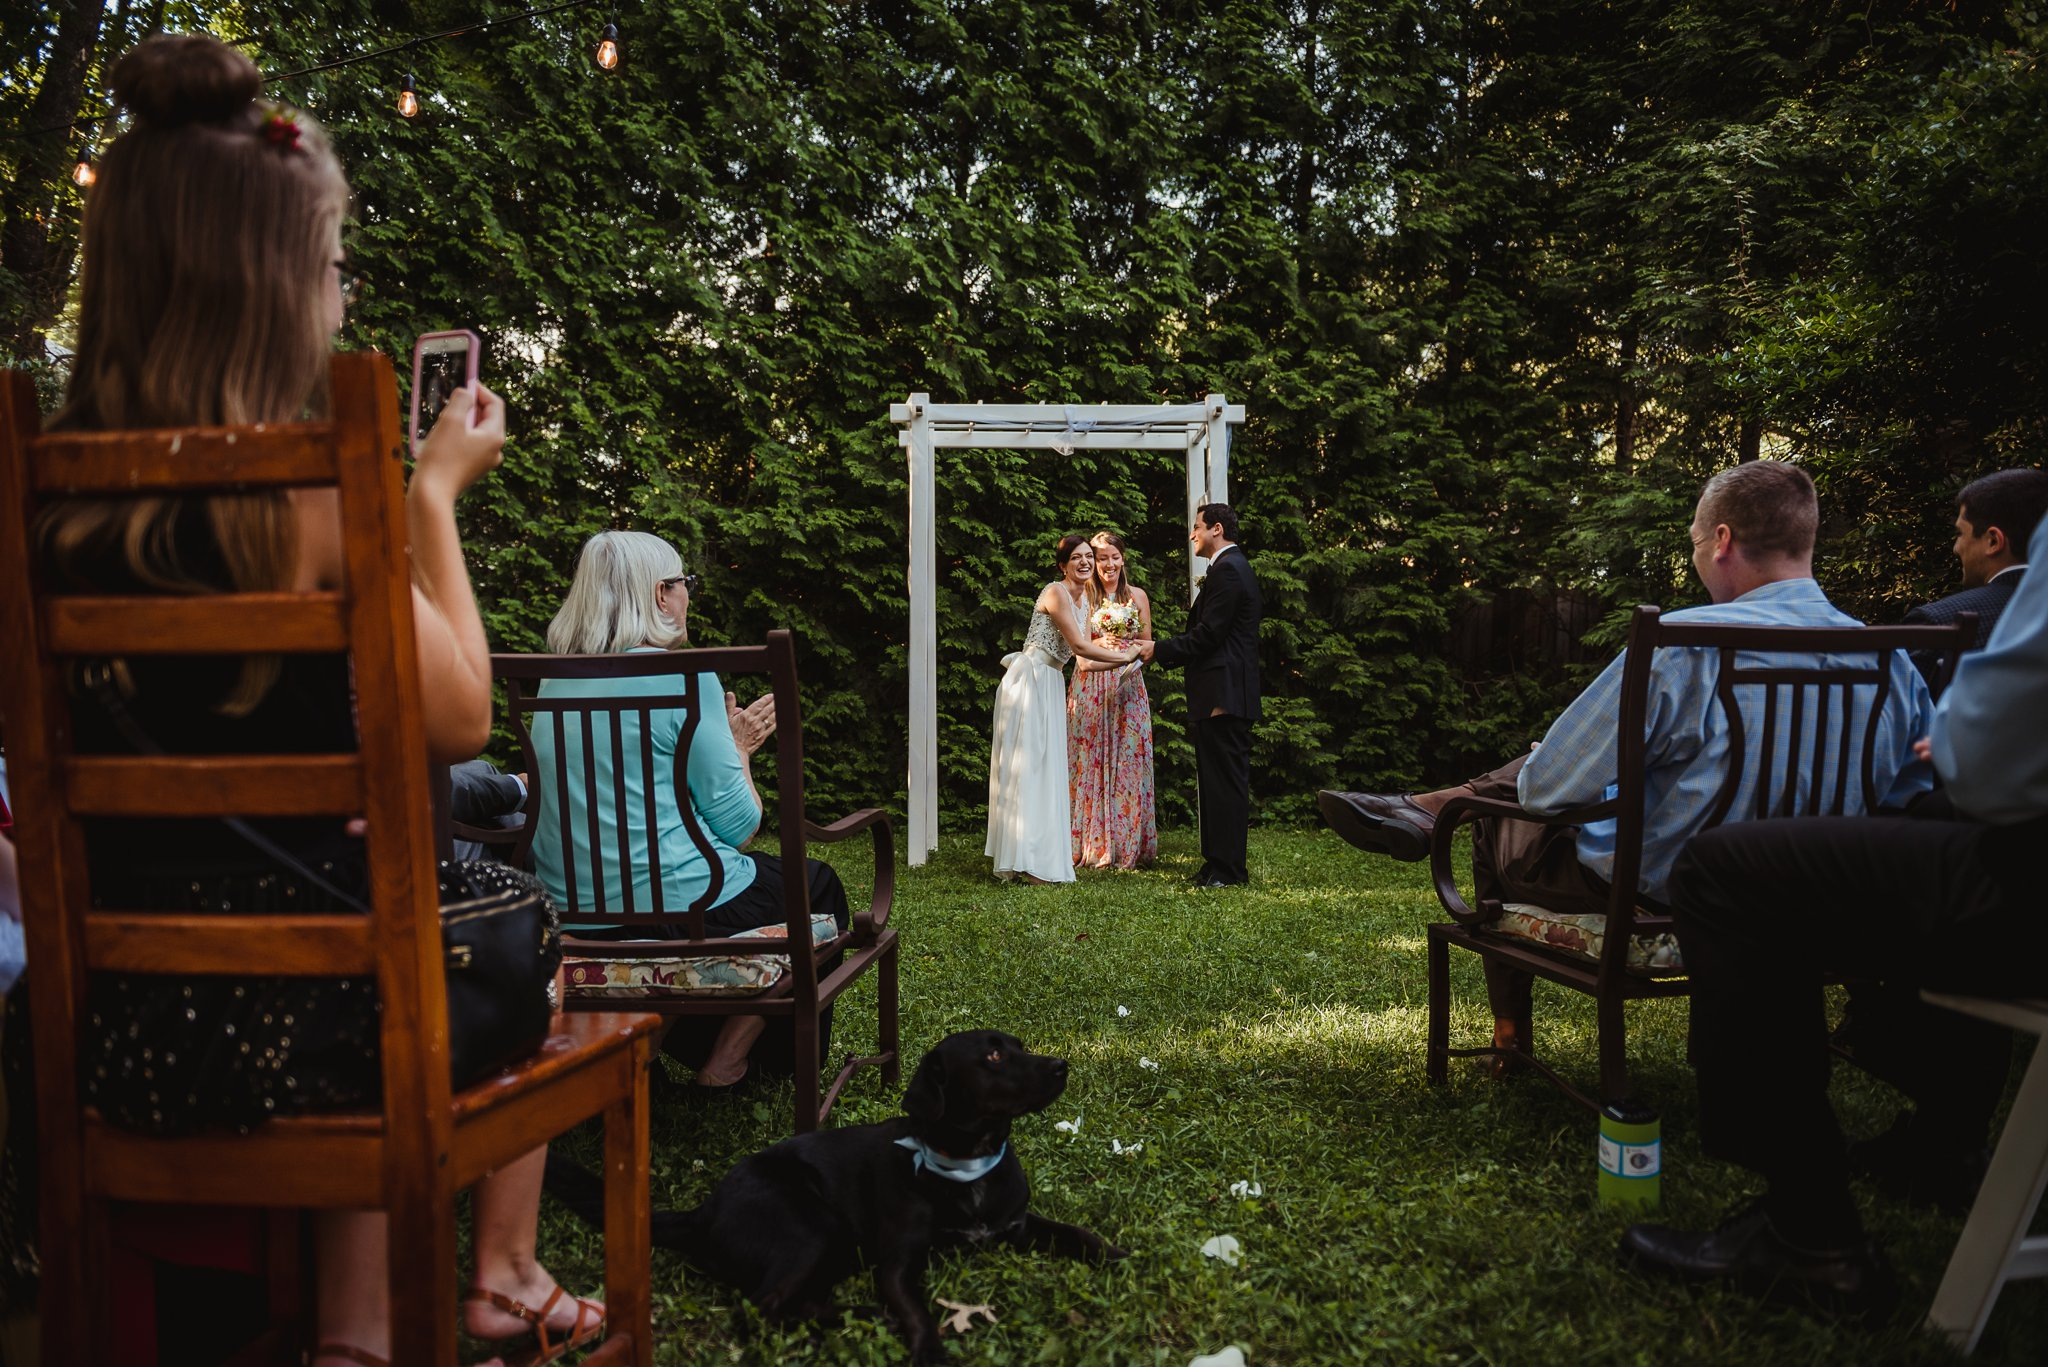 """The bride and groom said """"I do""""during their intimate wedding ceremony that took place in their backyard in downtown Raleigh, North Carolina, photo by Rose Trail Images."""